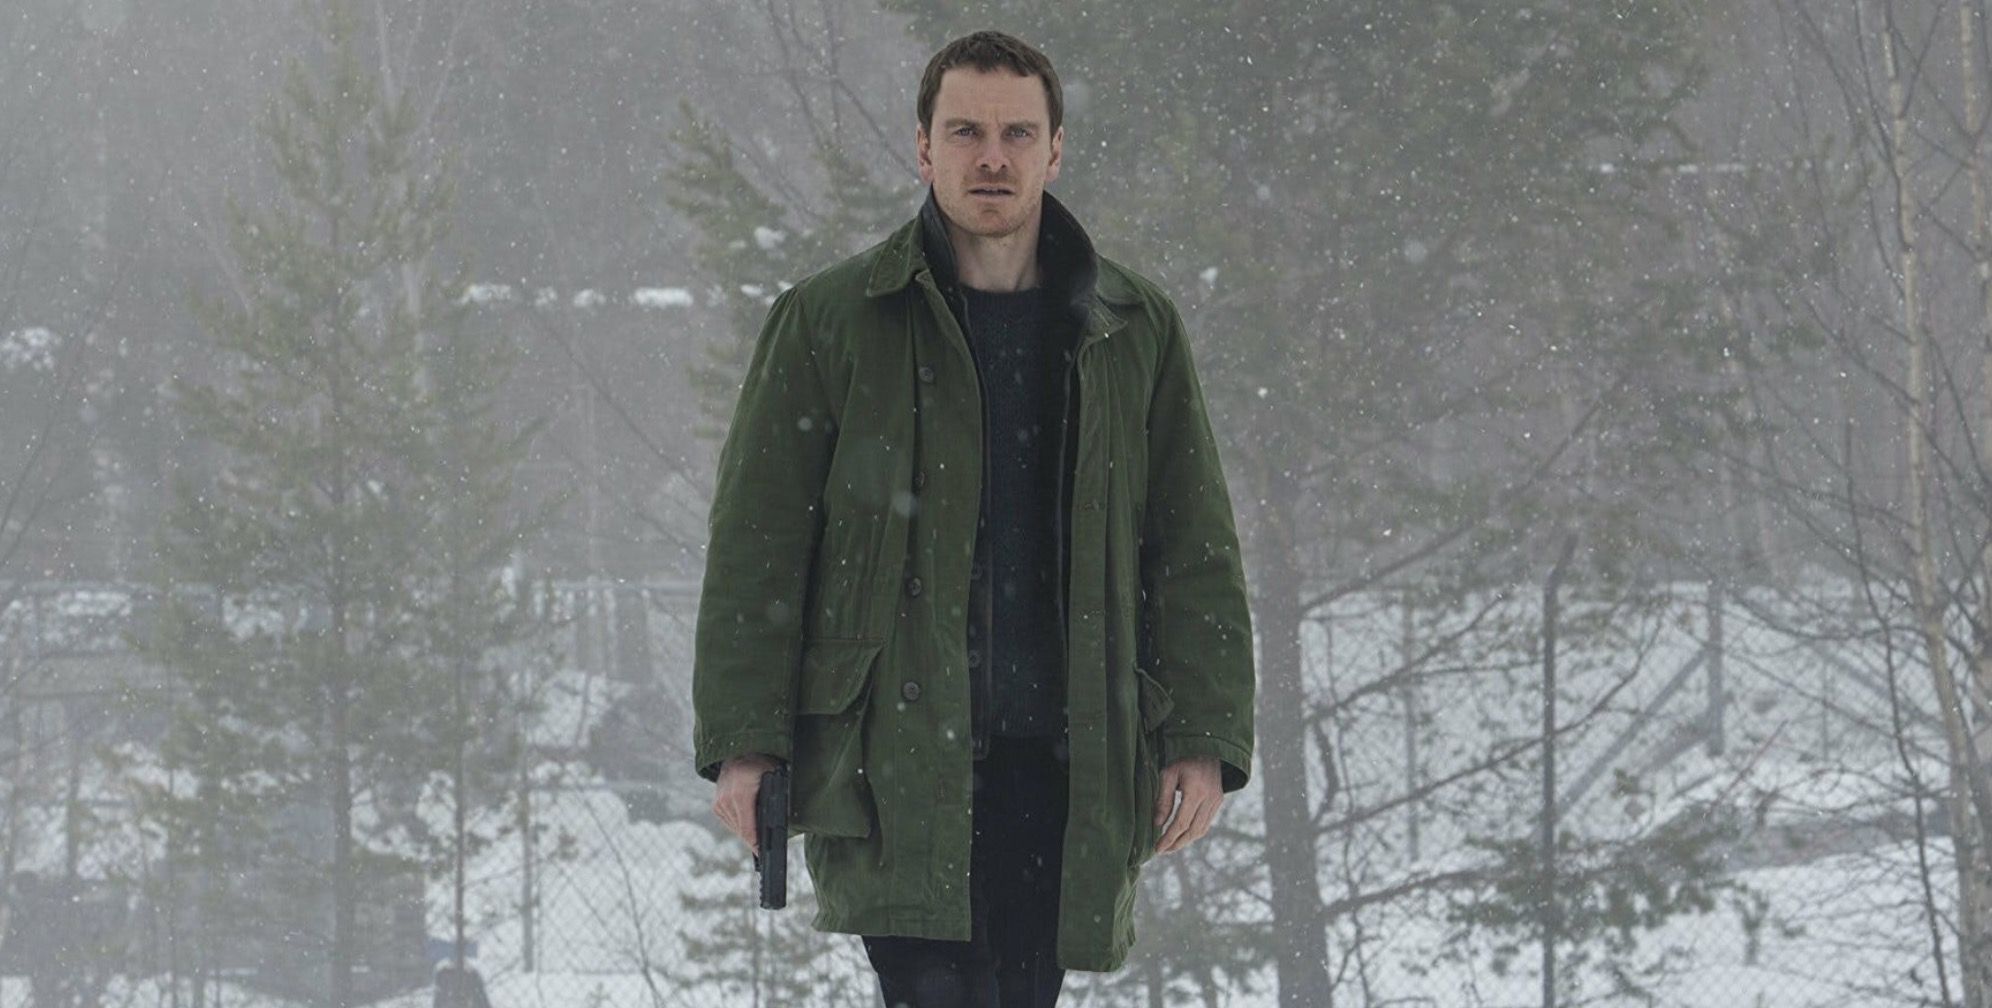 Michael Fasbender in The Snowman